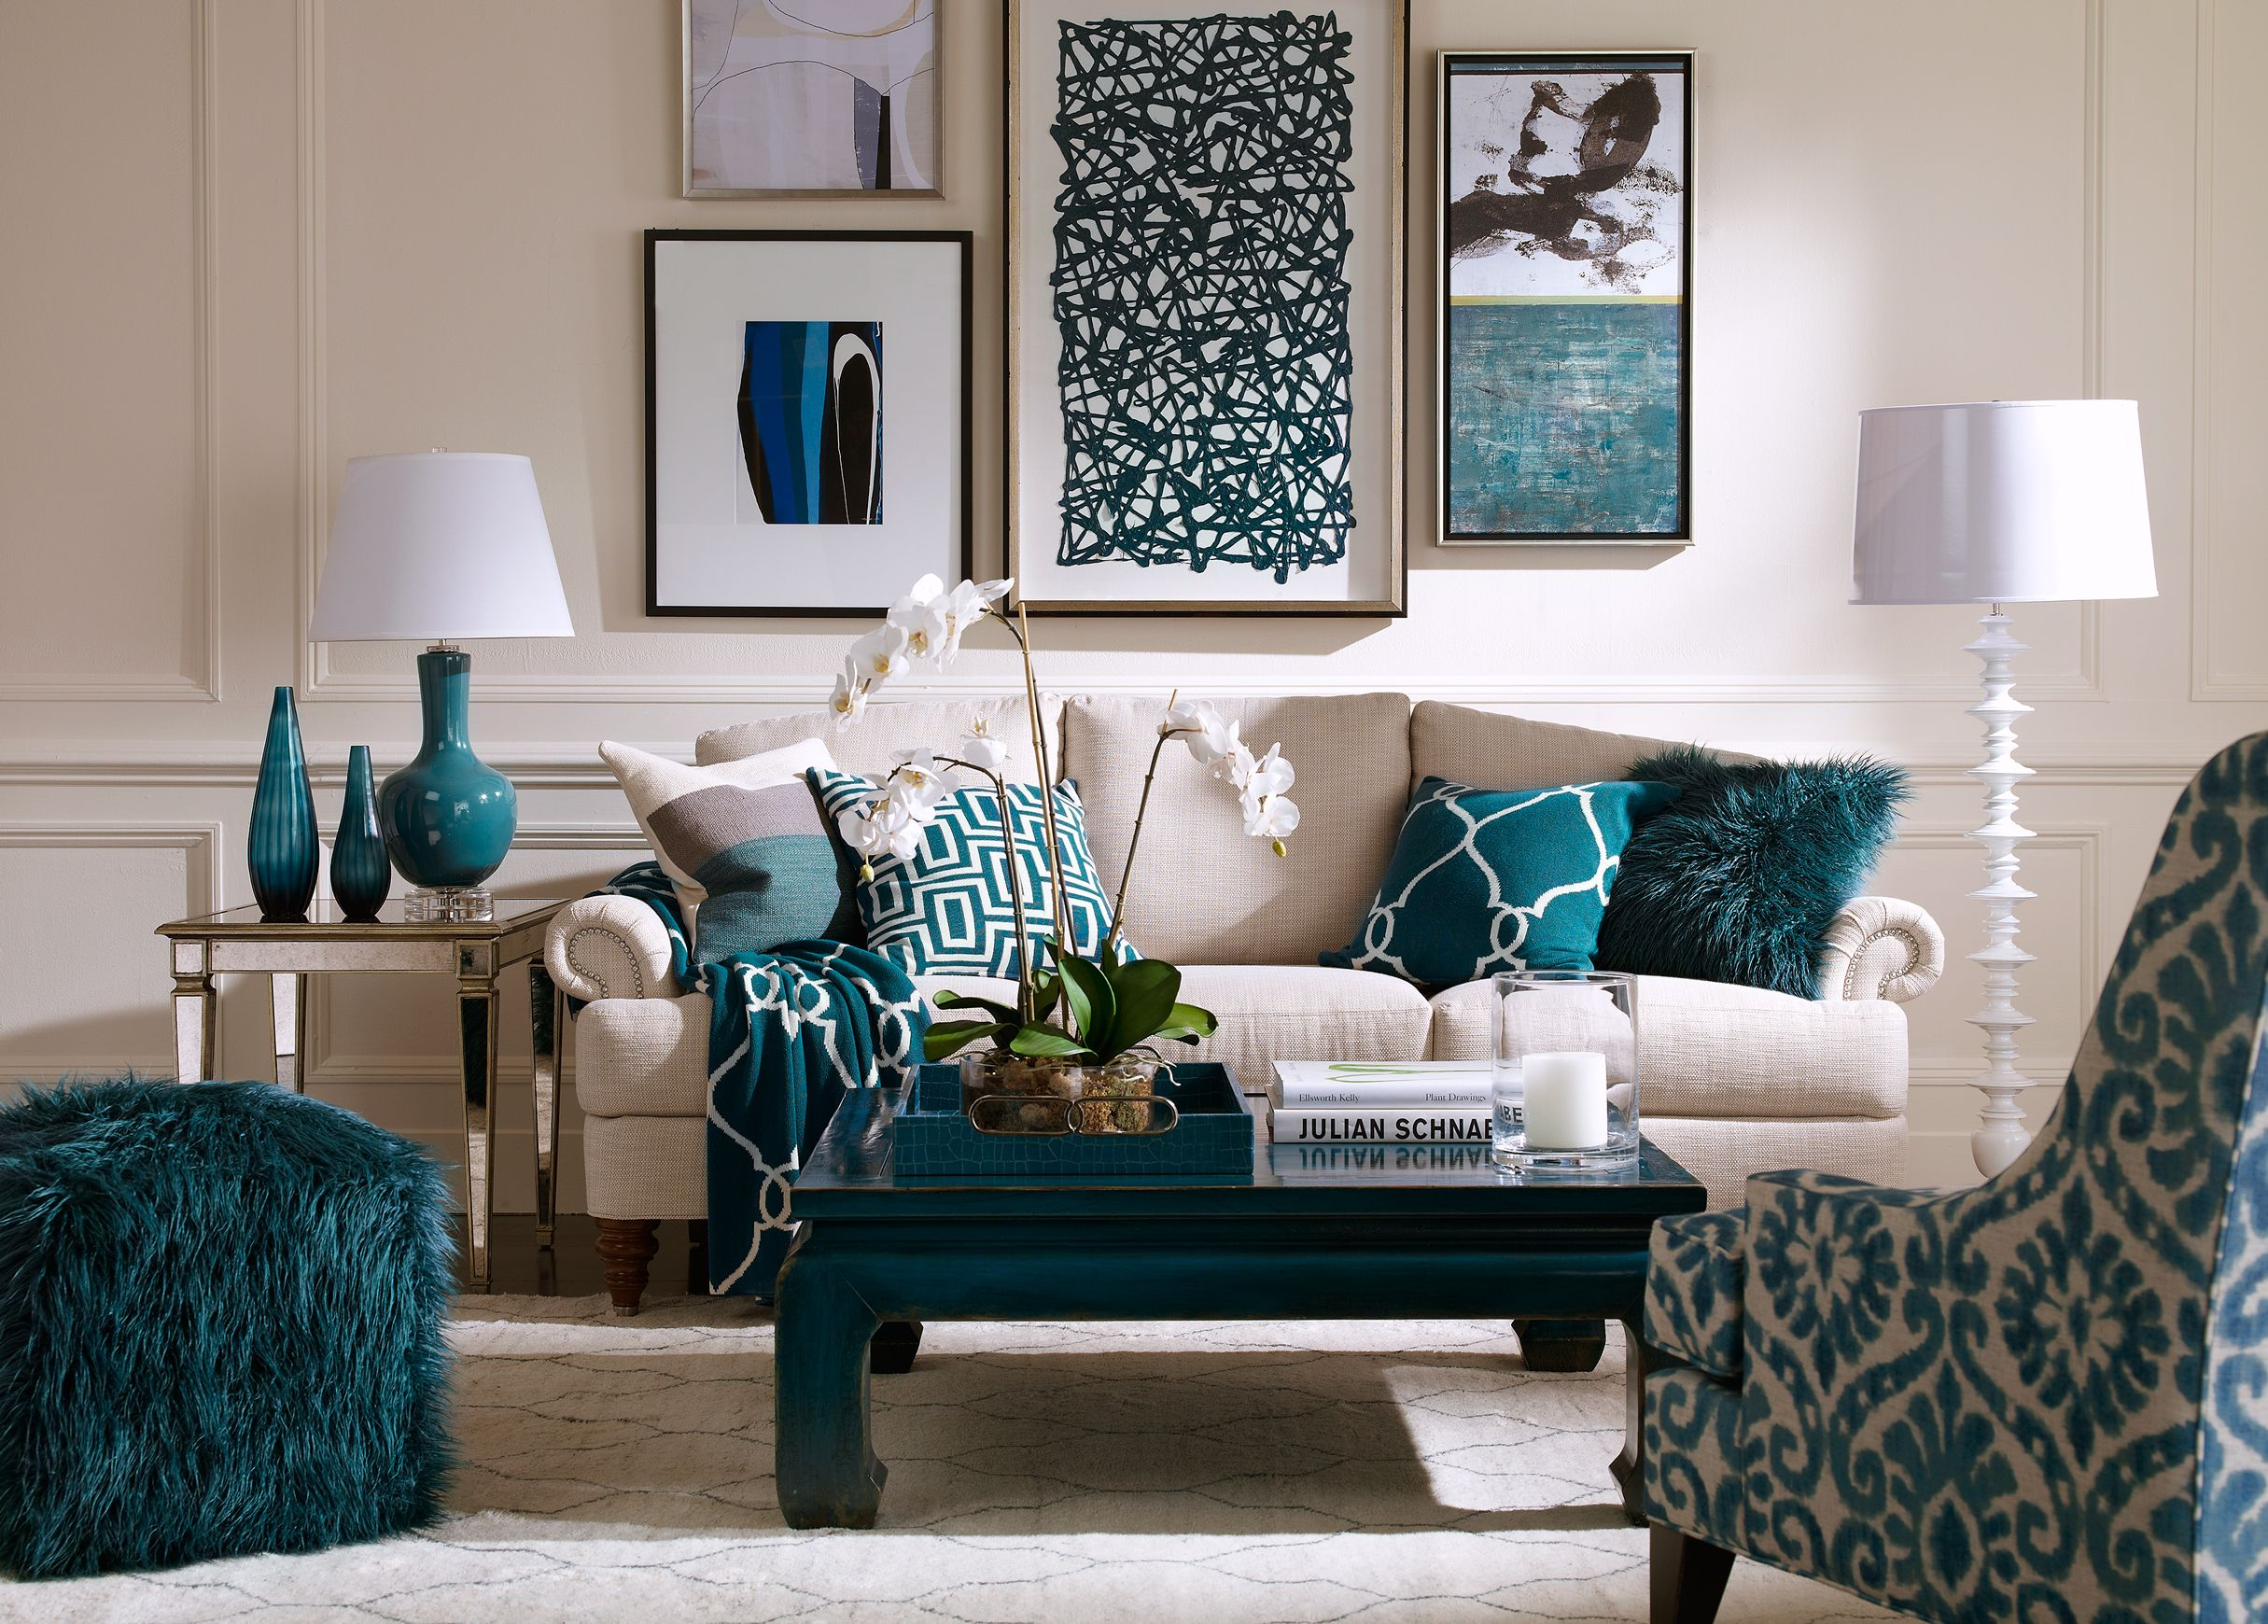 Best Kitchen Gallery: 15 Best Images About Turquoise Room Decorations Living Rooms of Living Room Ideas Decor  on rachelxblog.com